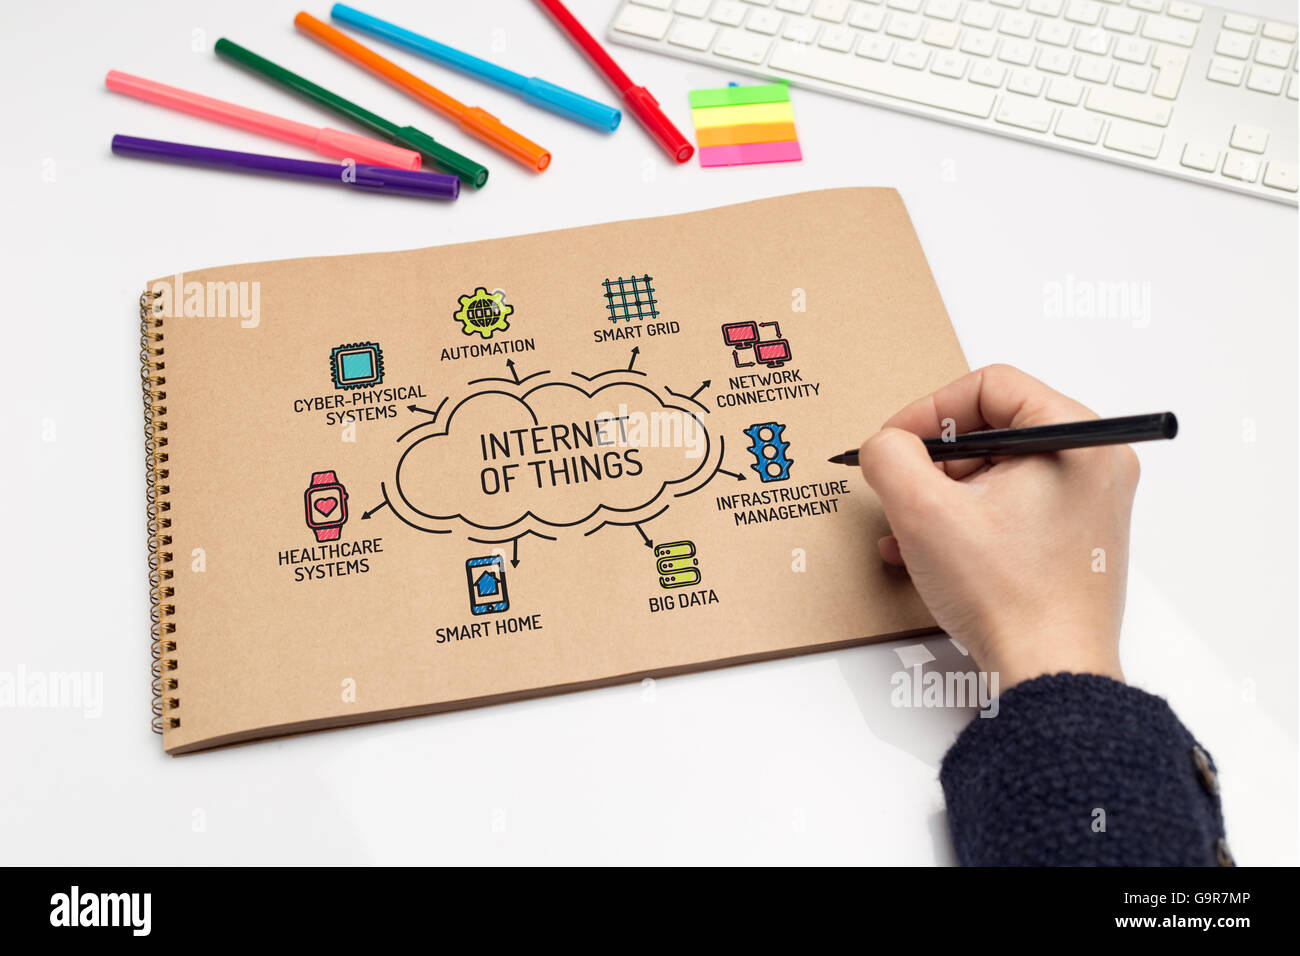 Internet of Things chart with keywords and sketch icons - Stock Image